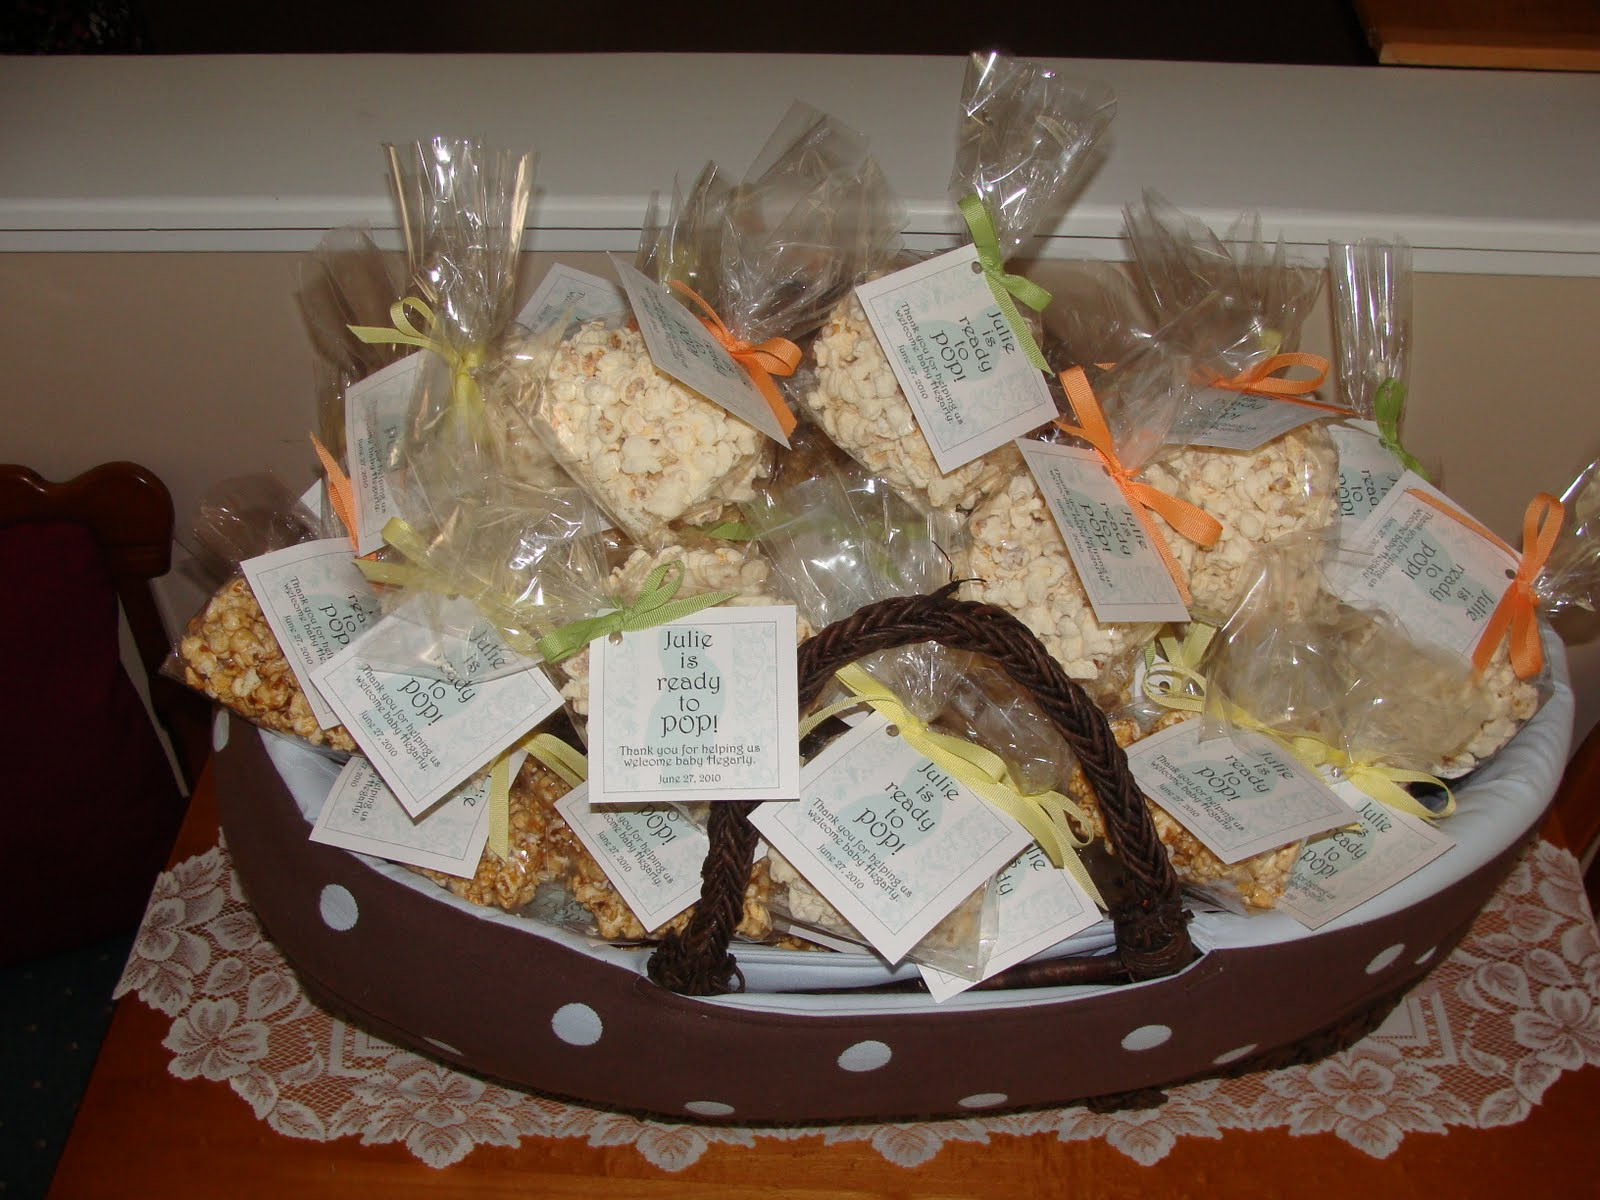 julie's baby shower favors  k.gourmae, Baby shower